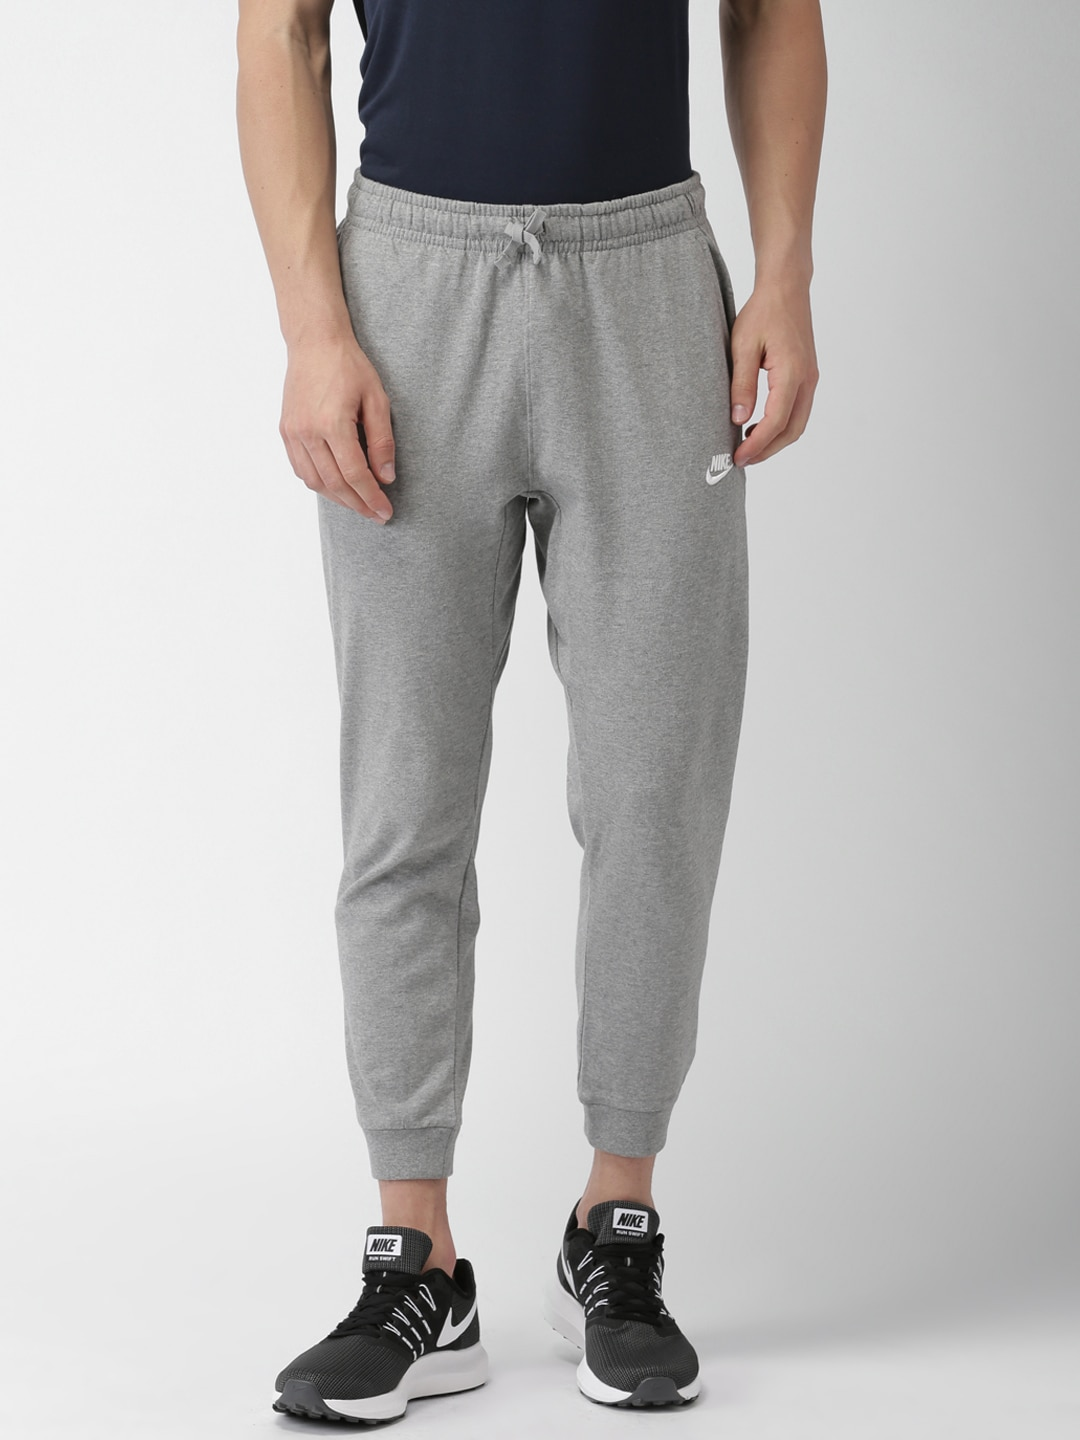 Buy Nike Grey Melange AS M NSW MODERN JOGGER FT Joggers - Track ... 8da85f70d38d